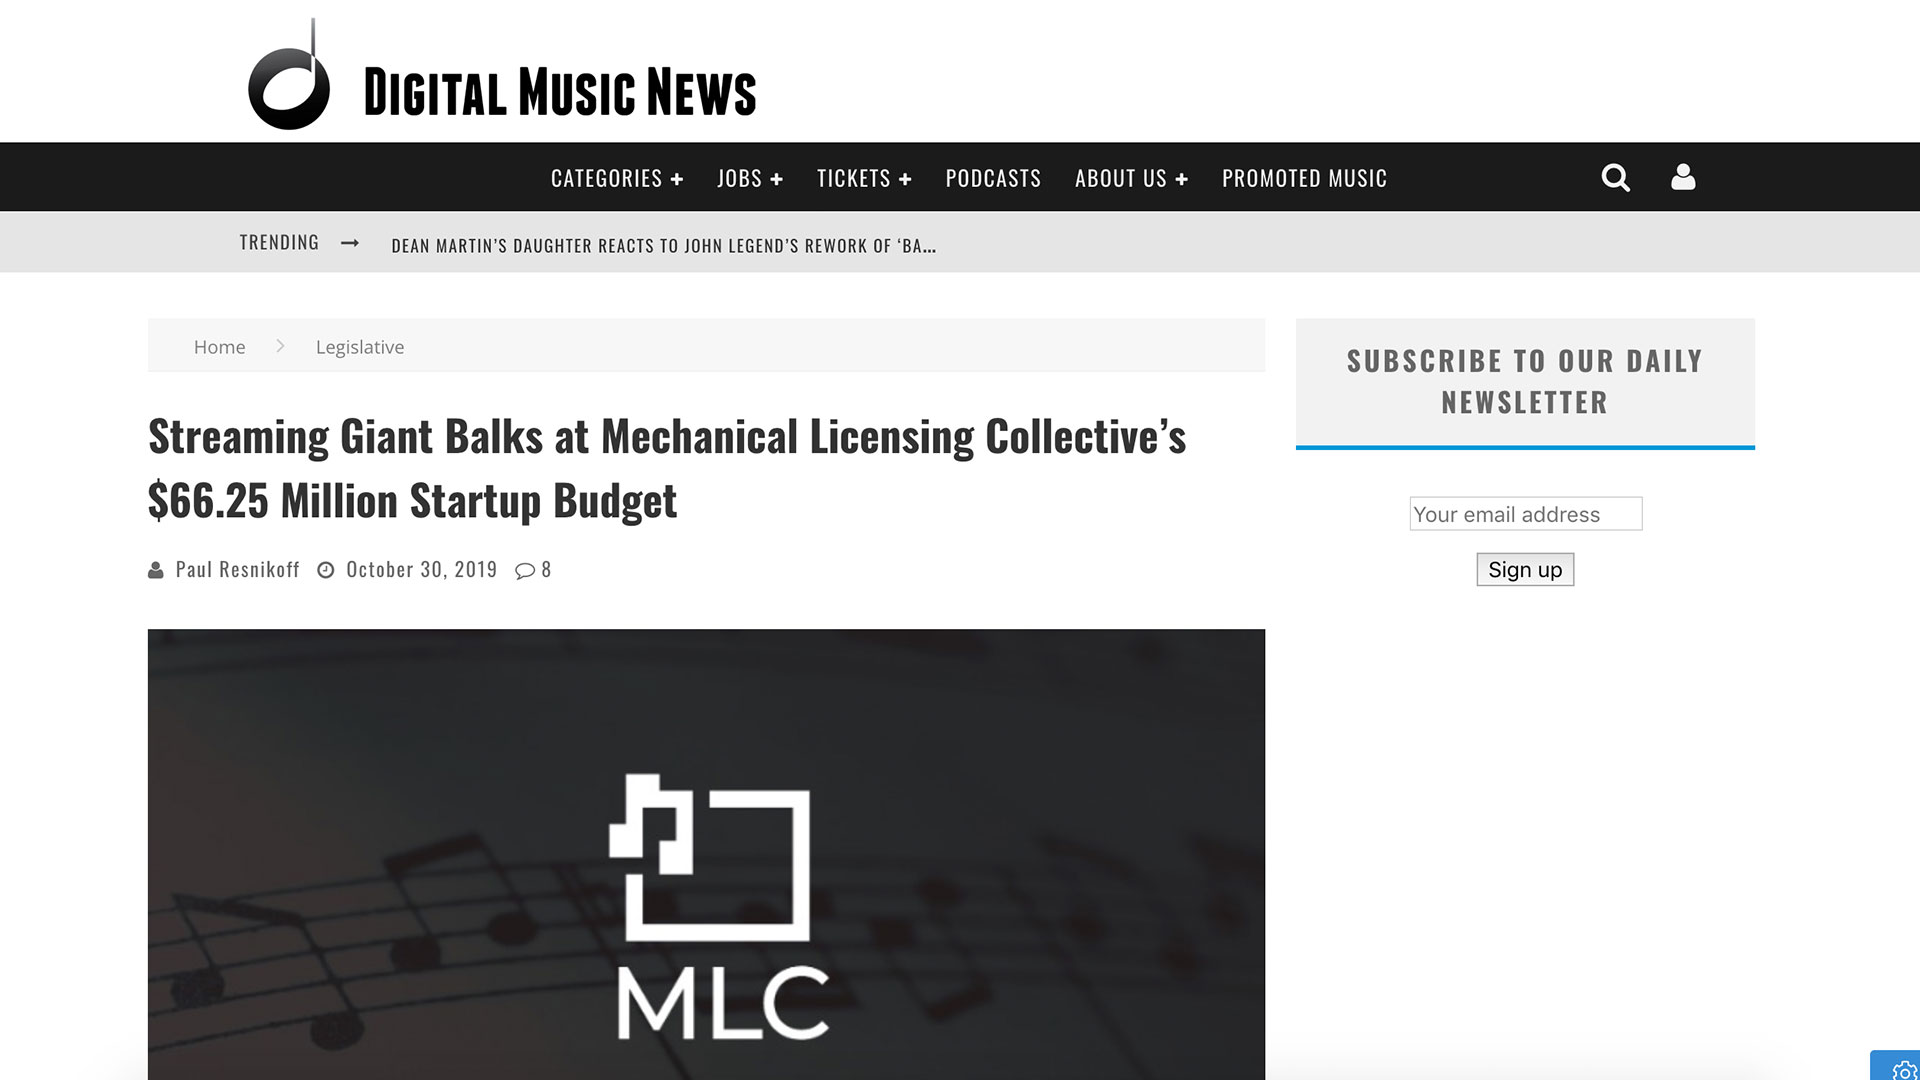 Fairness Rocks News Streaming Giant Balks at Mechanical Licensing Collective's $66.25 Million Startup Budget